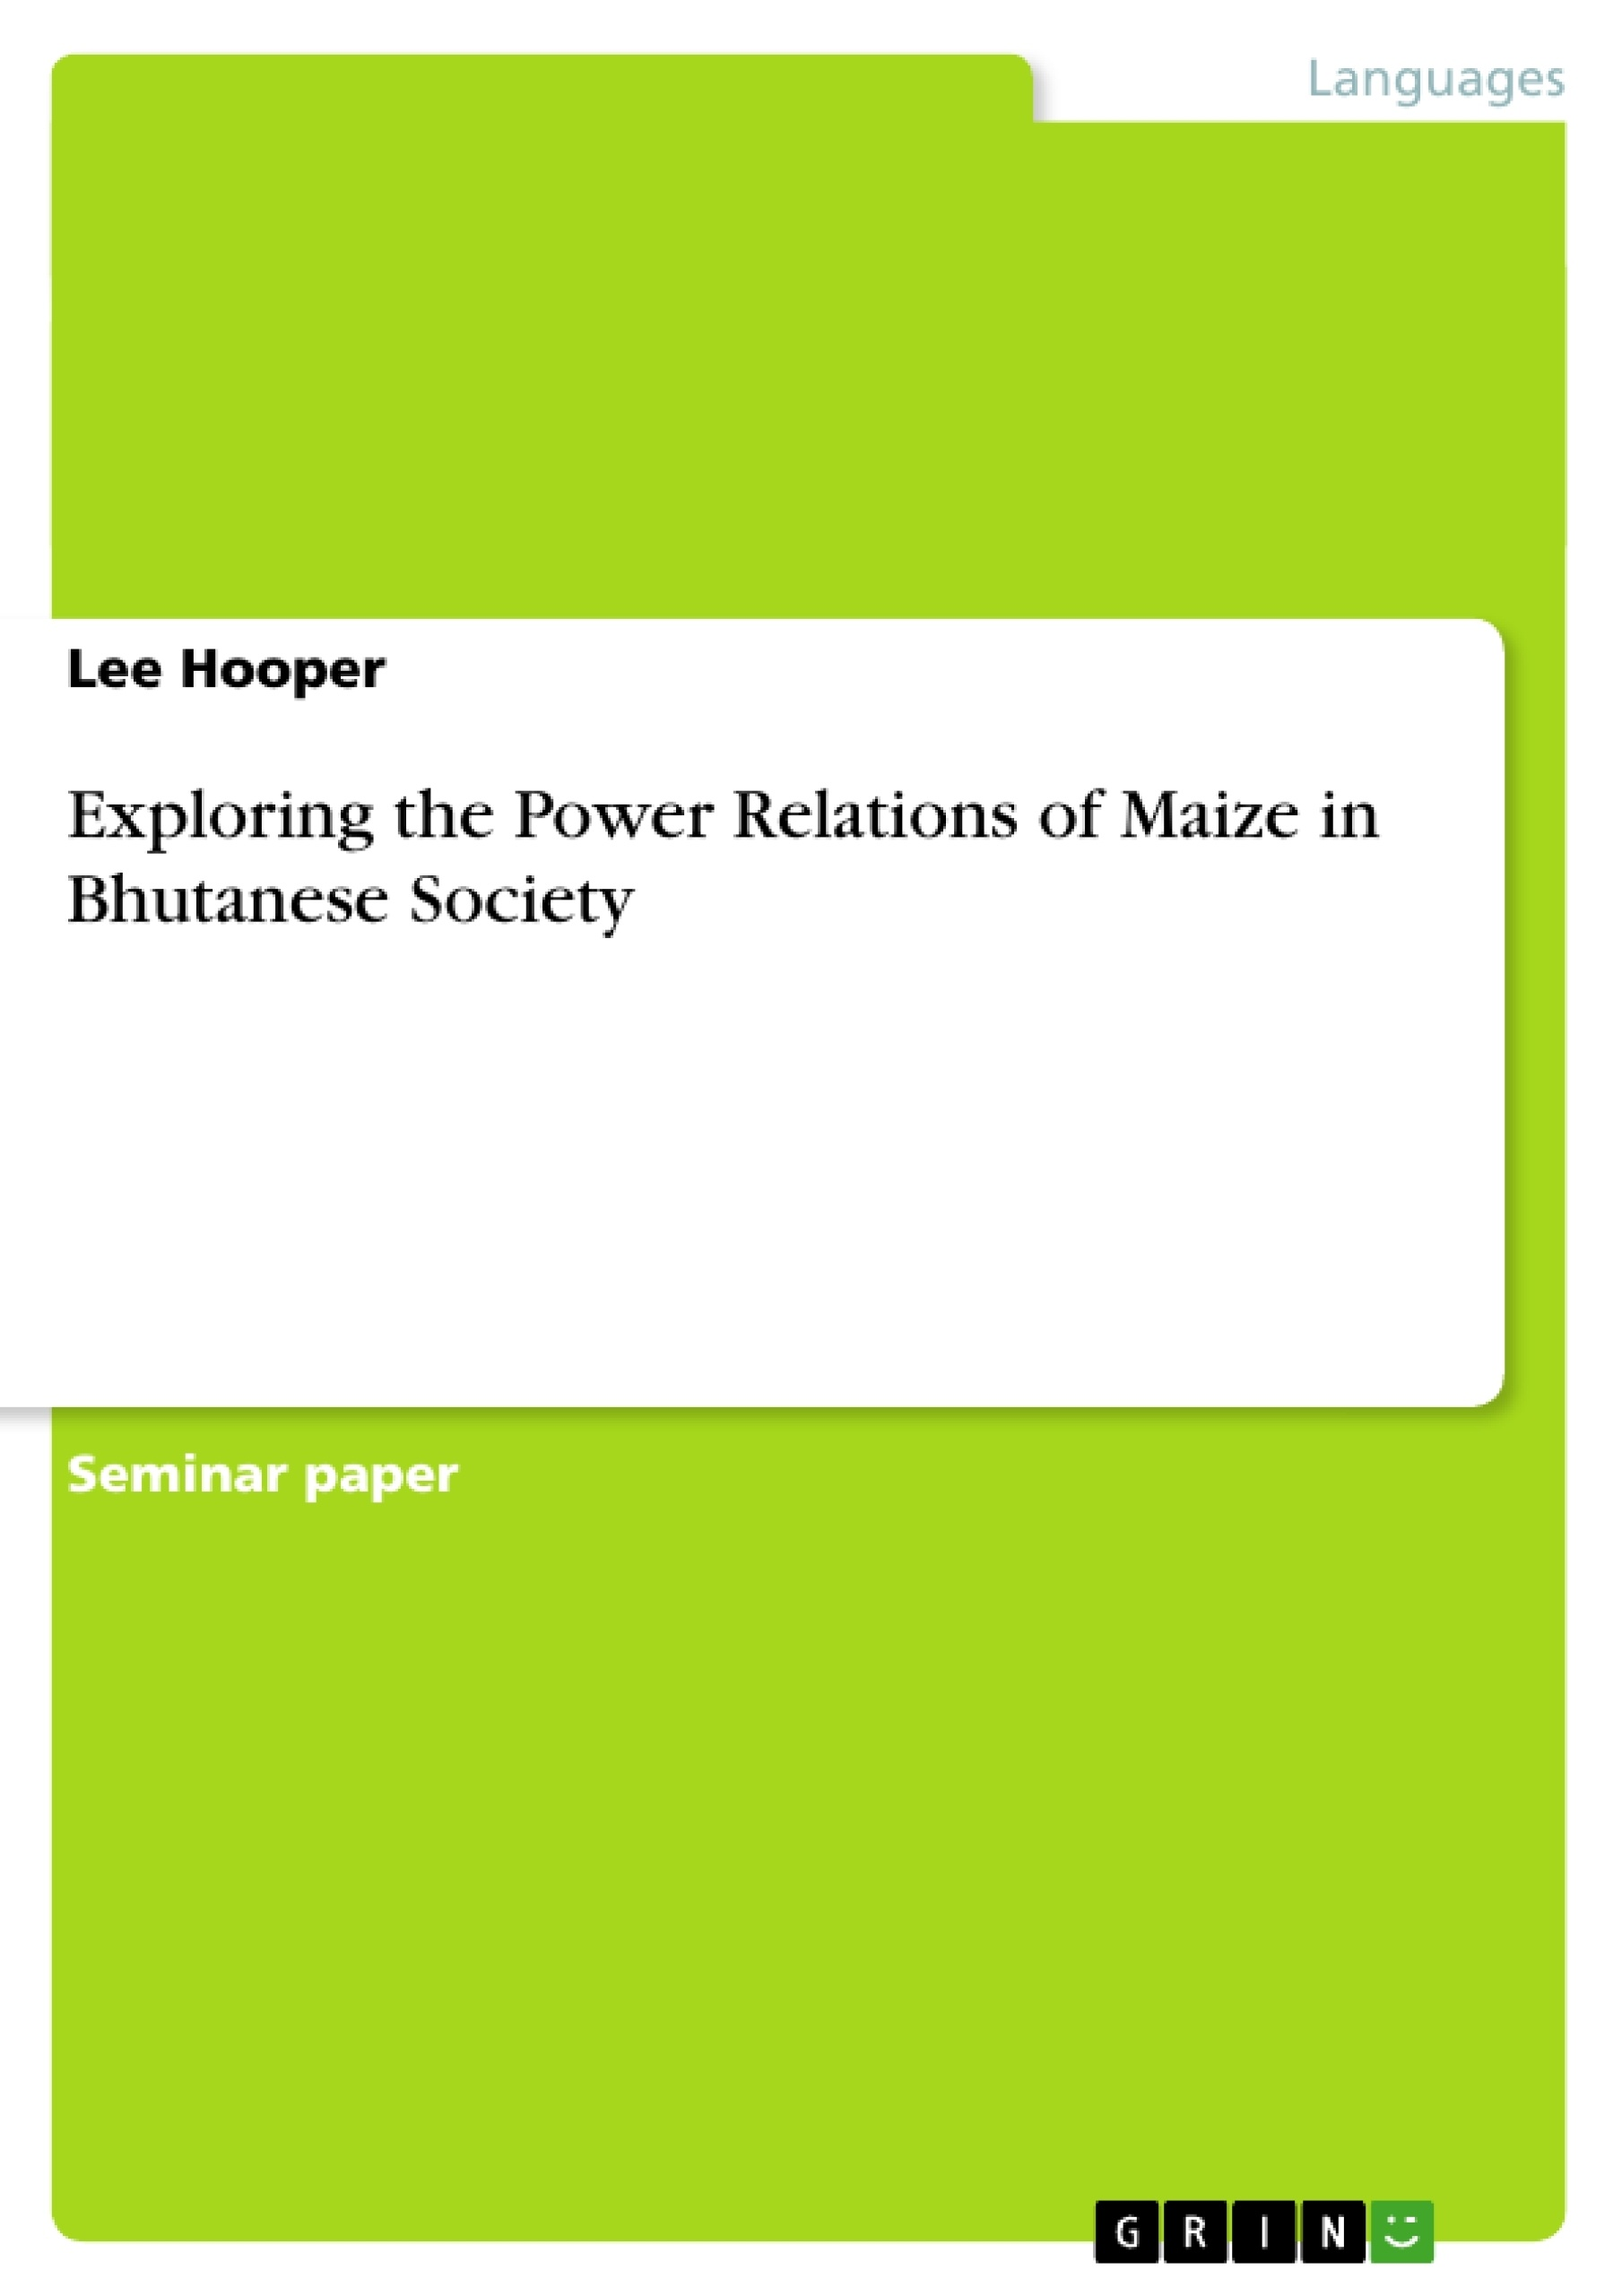 Title: Exploring the Power Relations of Maize in Bhutanese Society